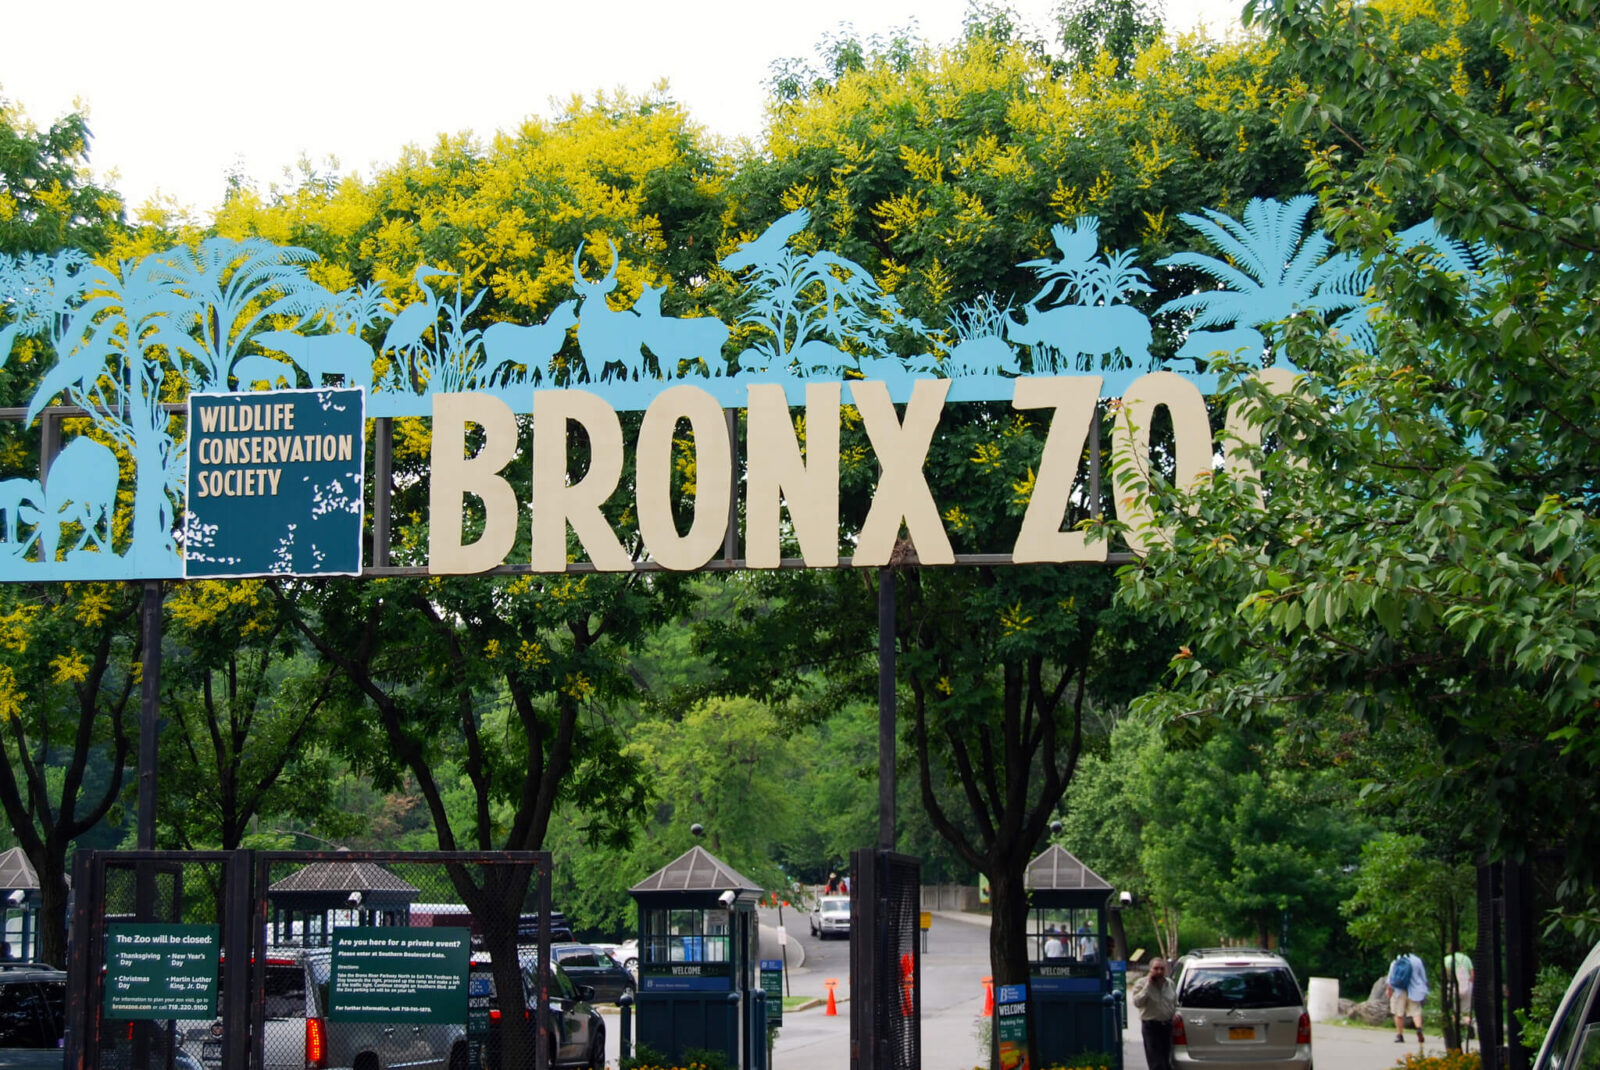 Bronx zoo visit NYC in 3 days